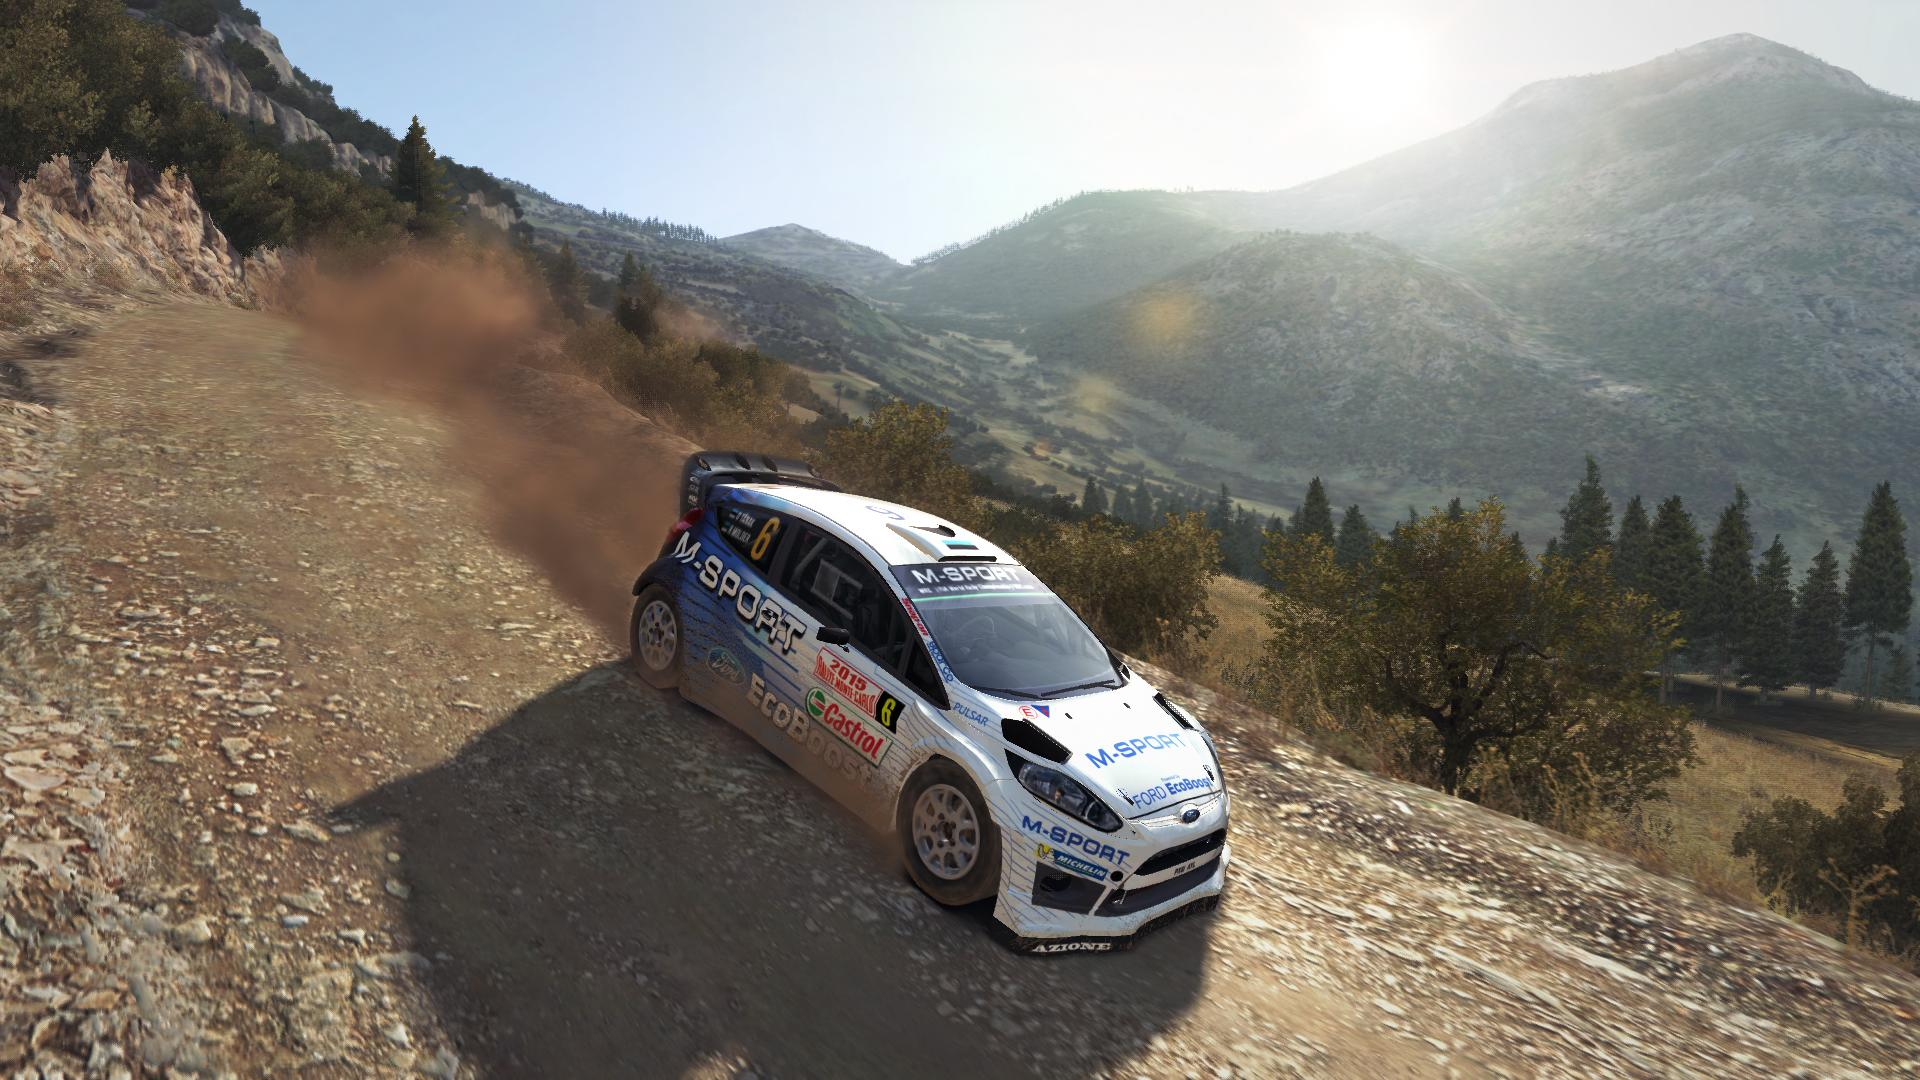 vsetop.com_1449571250_scr2.jpg - DiRT Rally